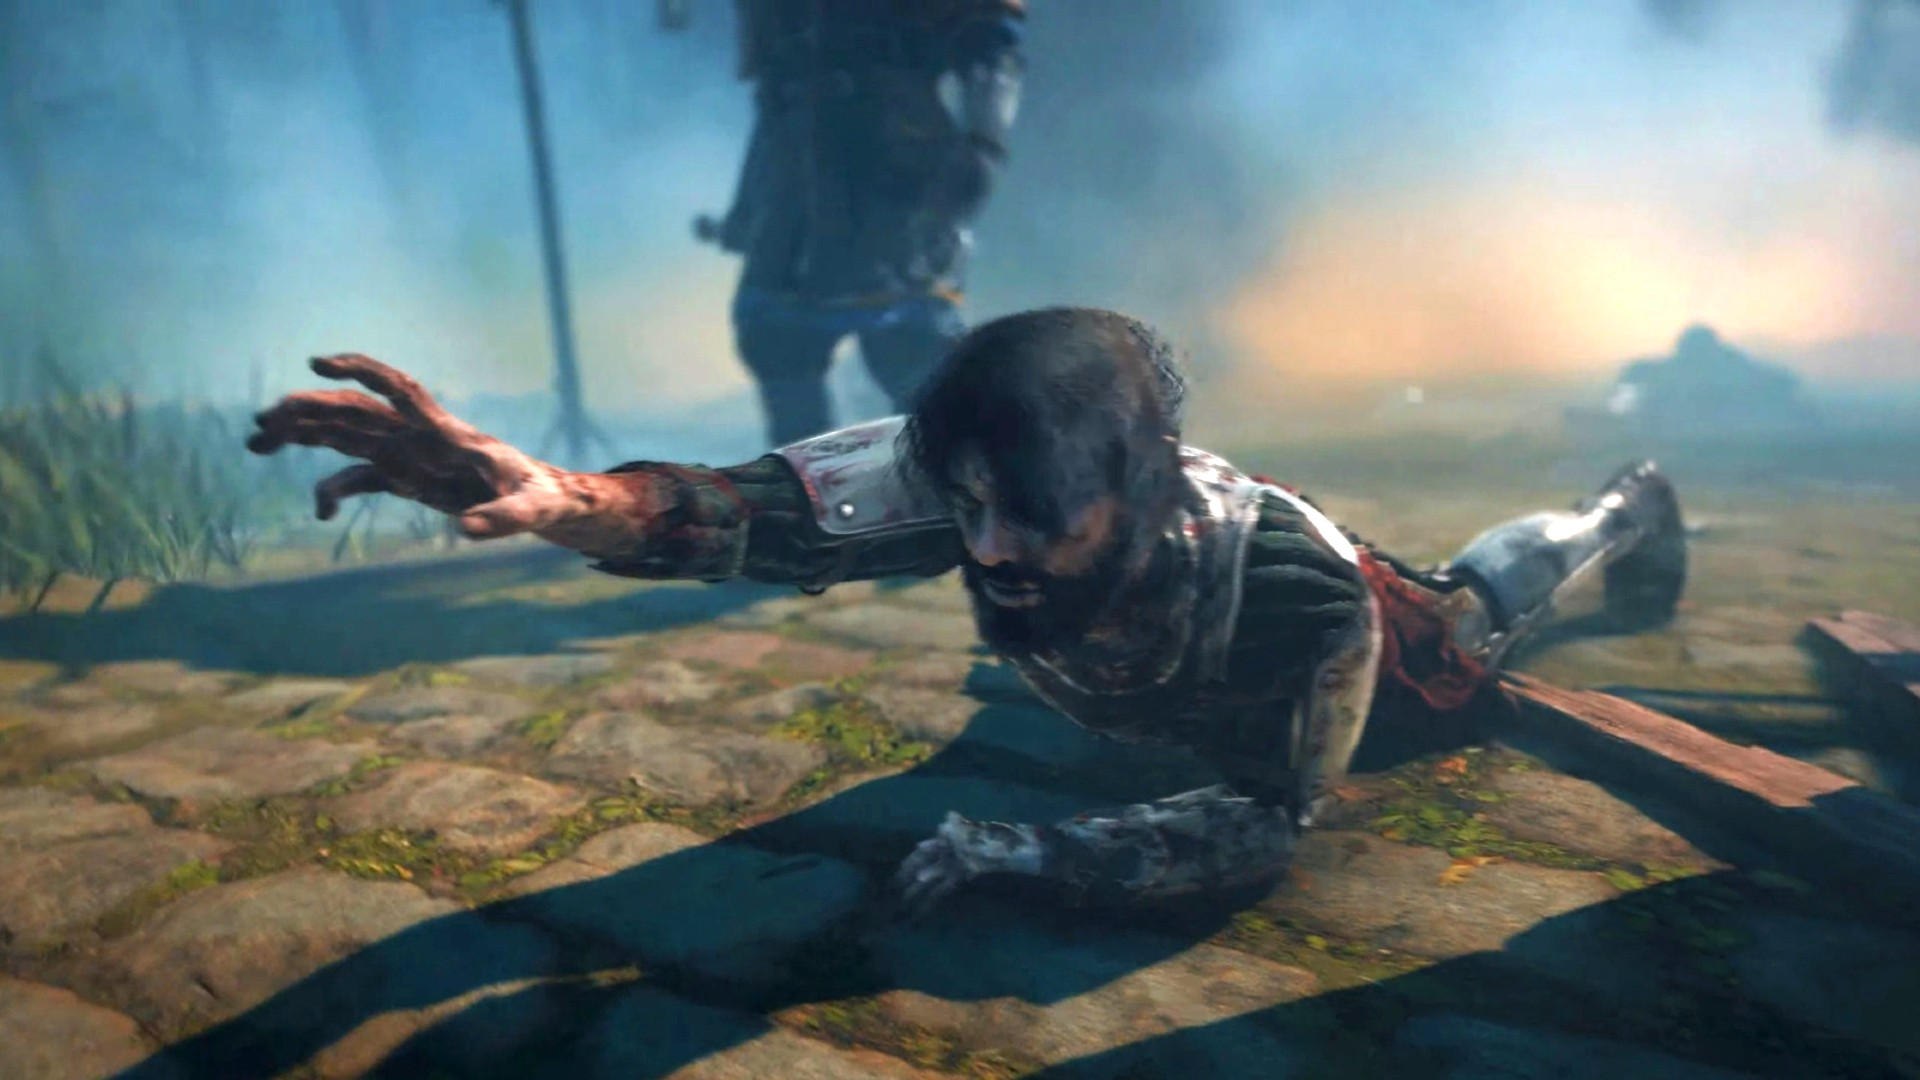 Siege Survival offers a civilian's frightening perspective on Total War